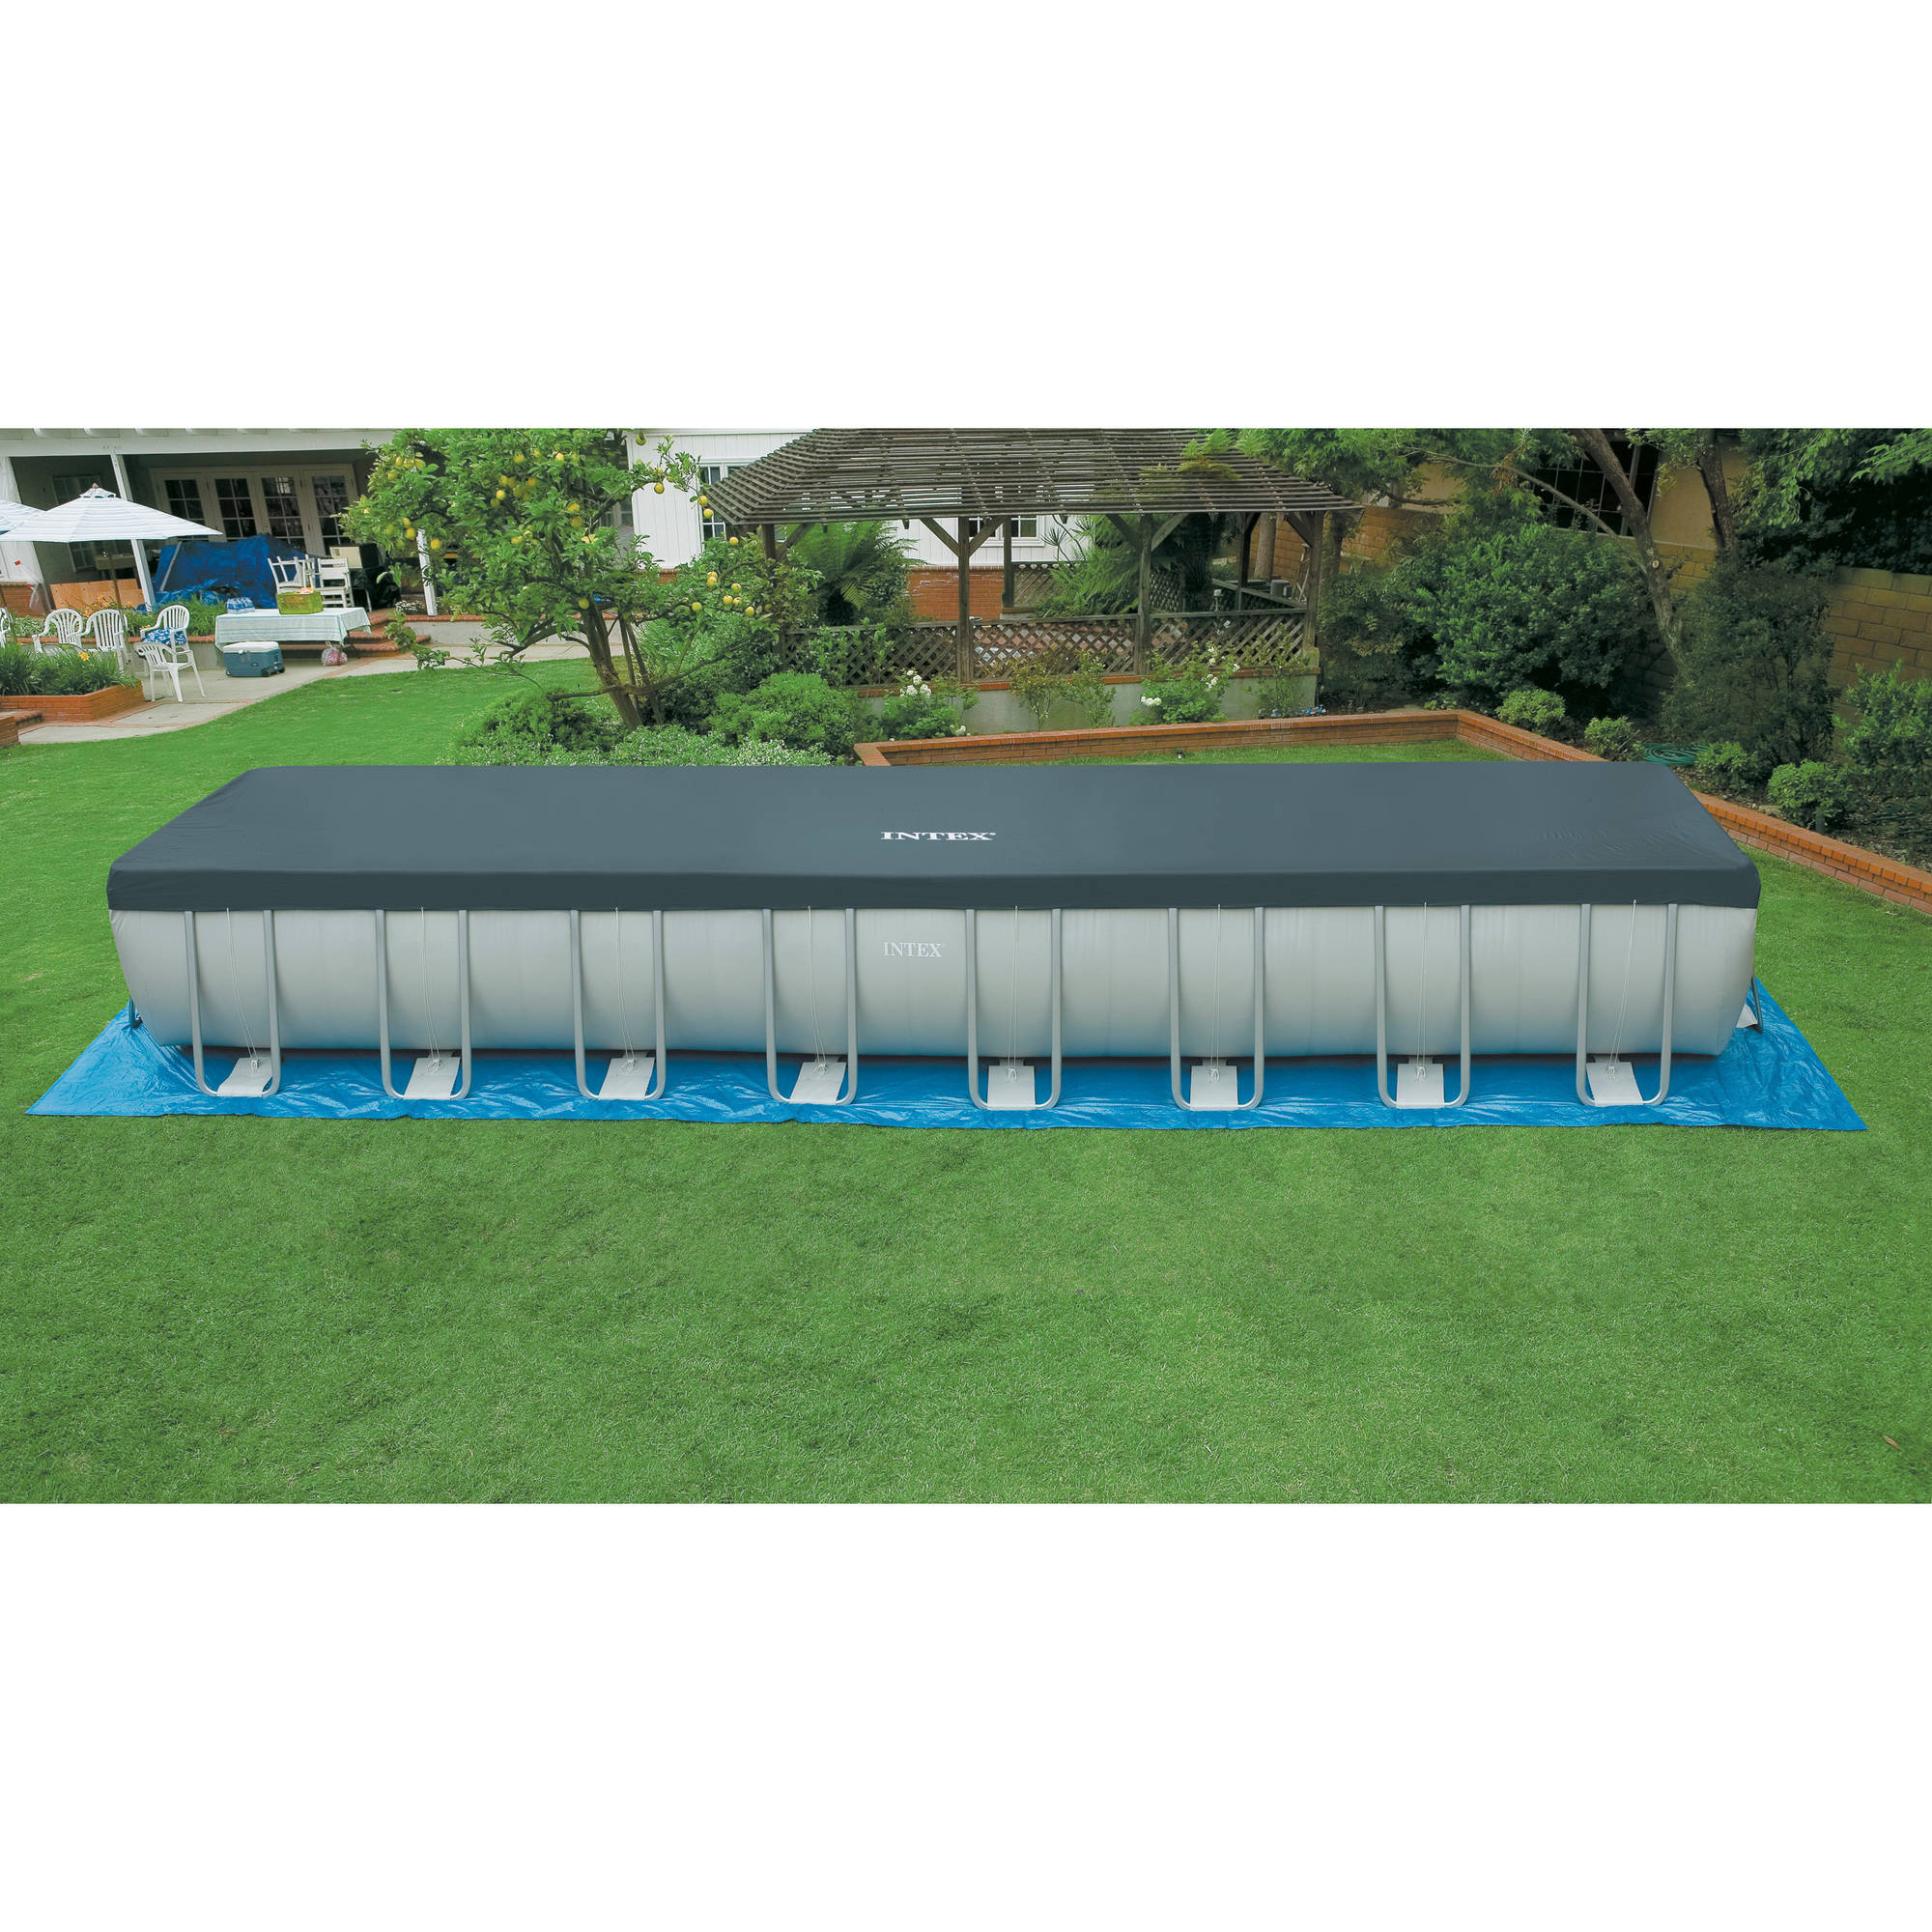 Intex 32 39 x 16 39 x 52 ultra frame rectangular above ground swimming pool with s for Intex rectangular swimming pool